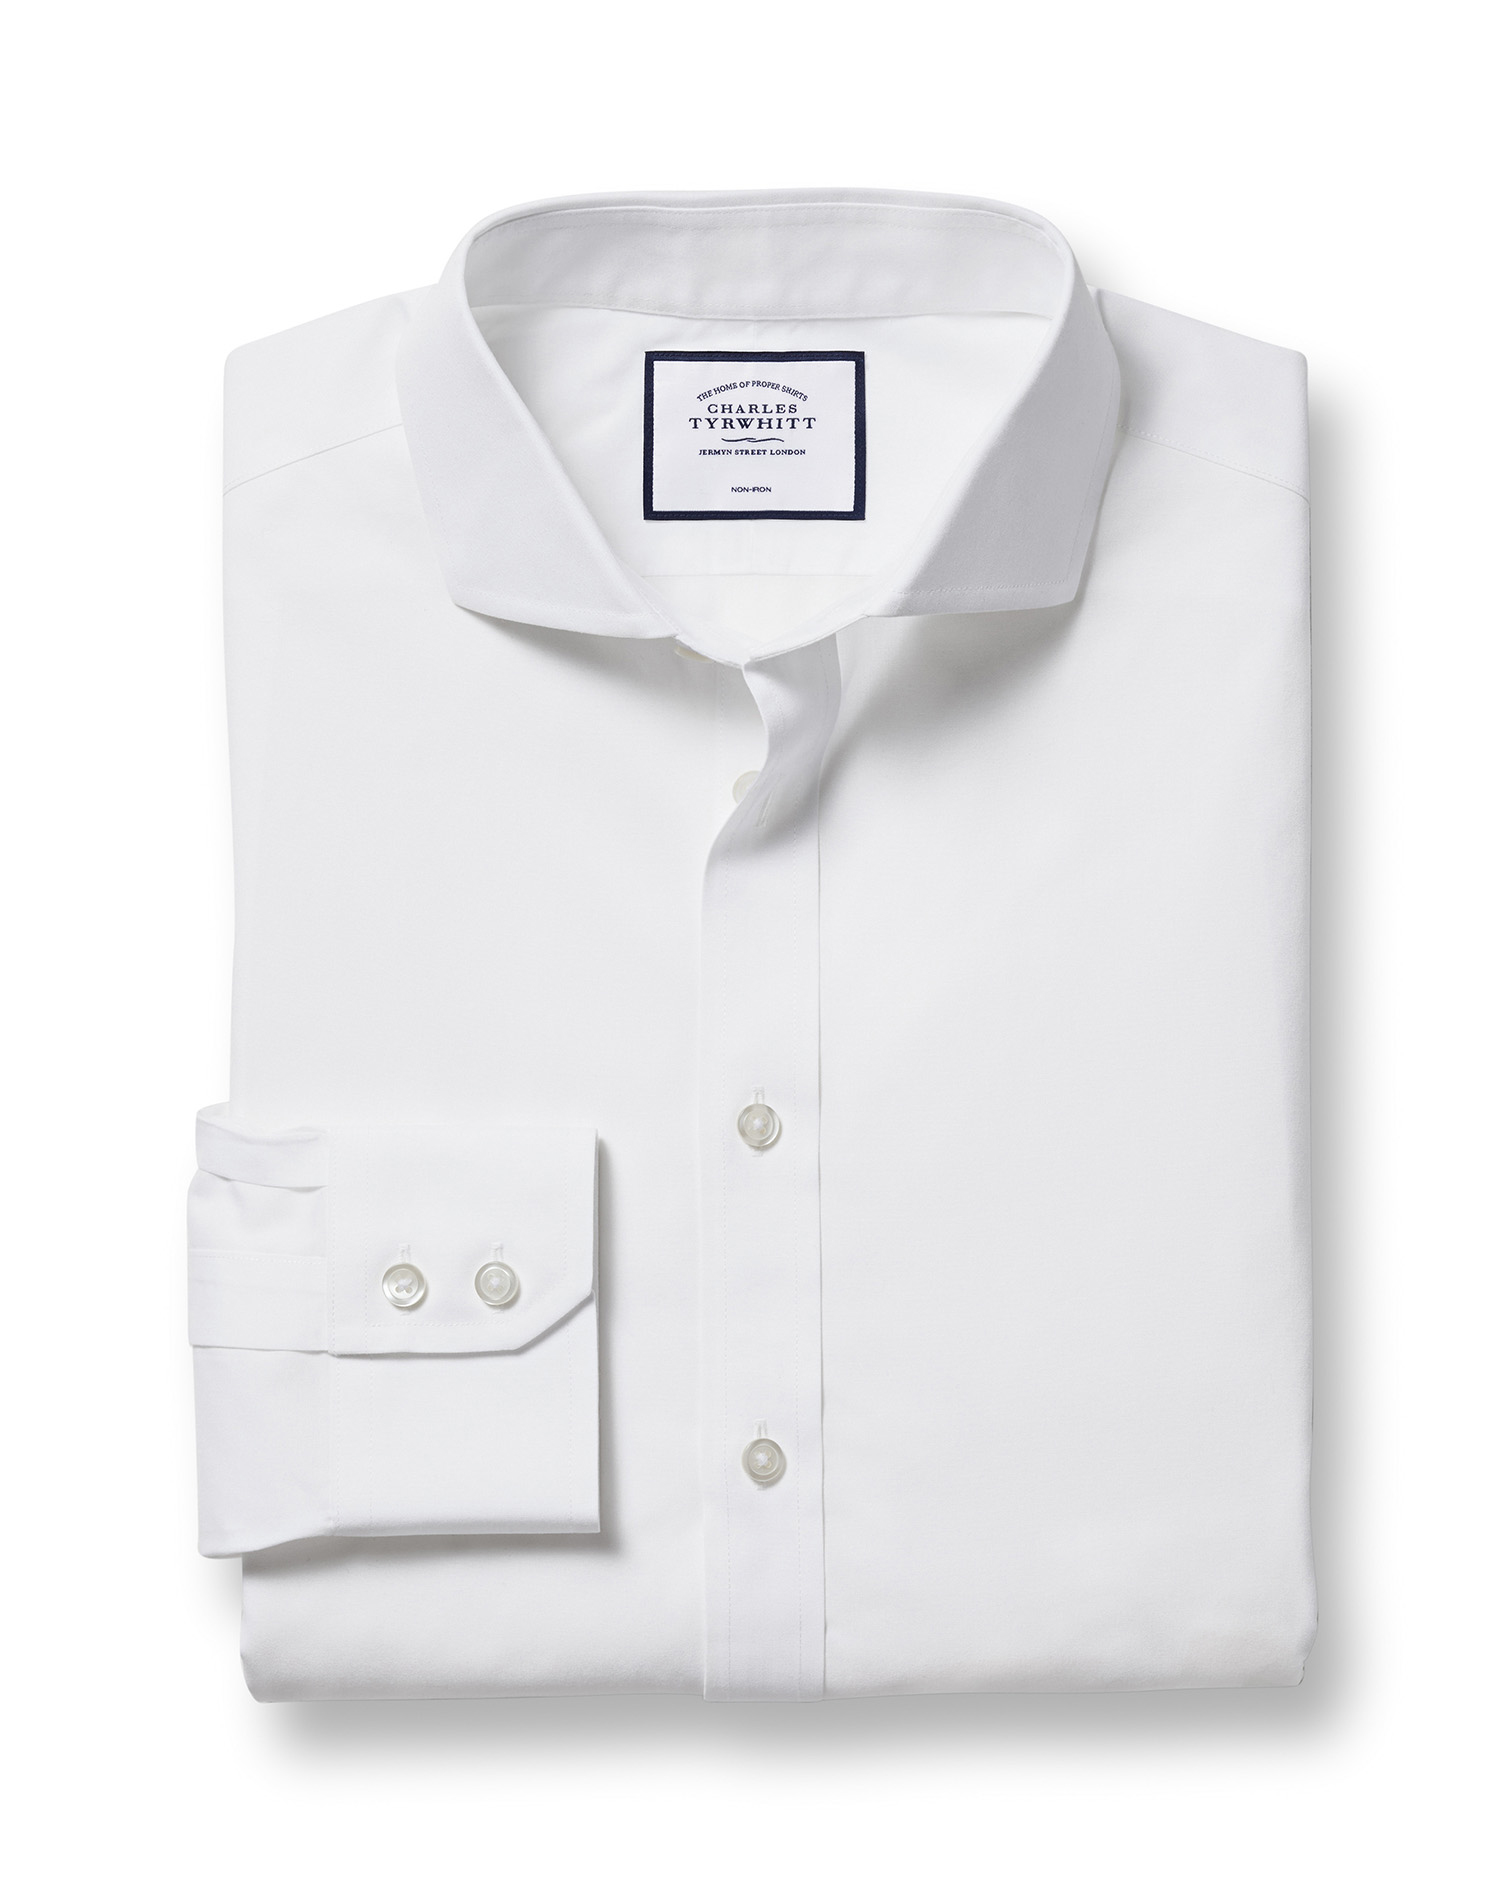 Classic Fit Cutaway Non-Iron Poplin White Cotton Formal Shirt Single Cuff Size 17/38 by Charles Tyrw